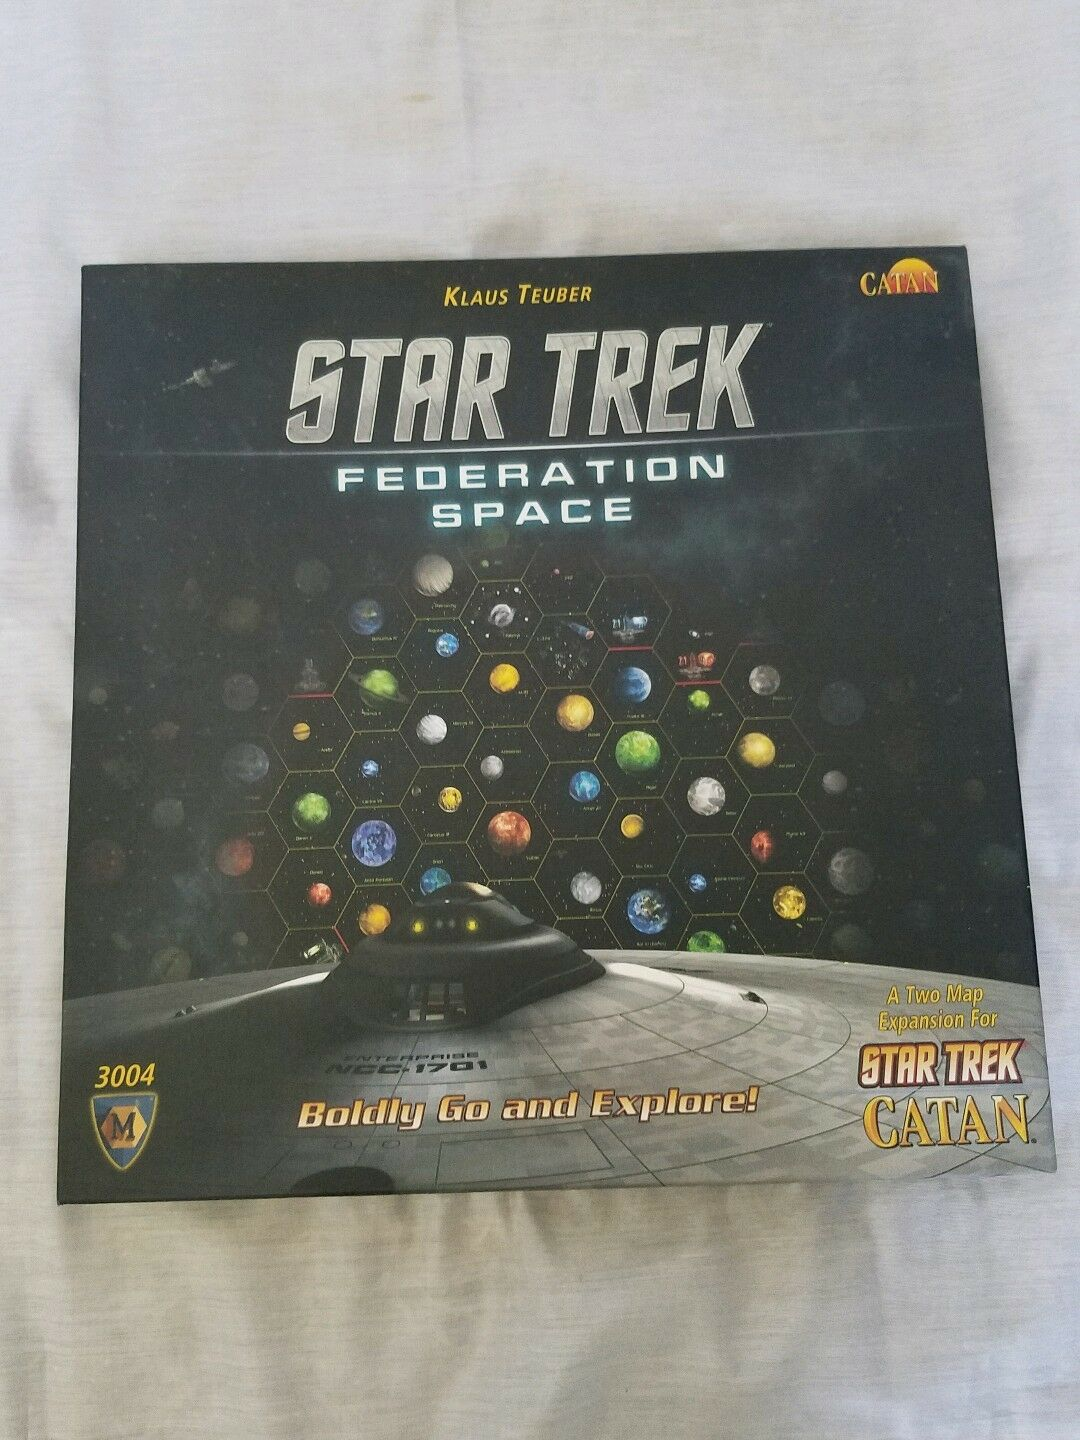 Star Trek Federation Space- Two Map Expansion Star Trek Catan Preowned Complete